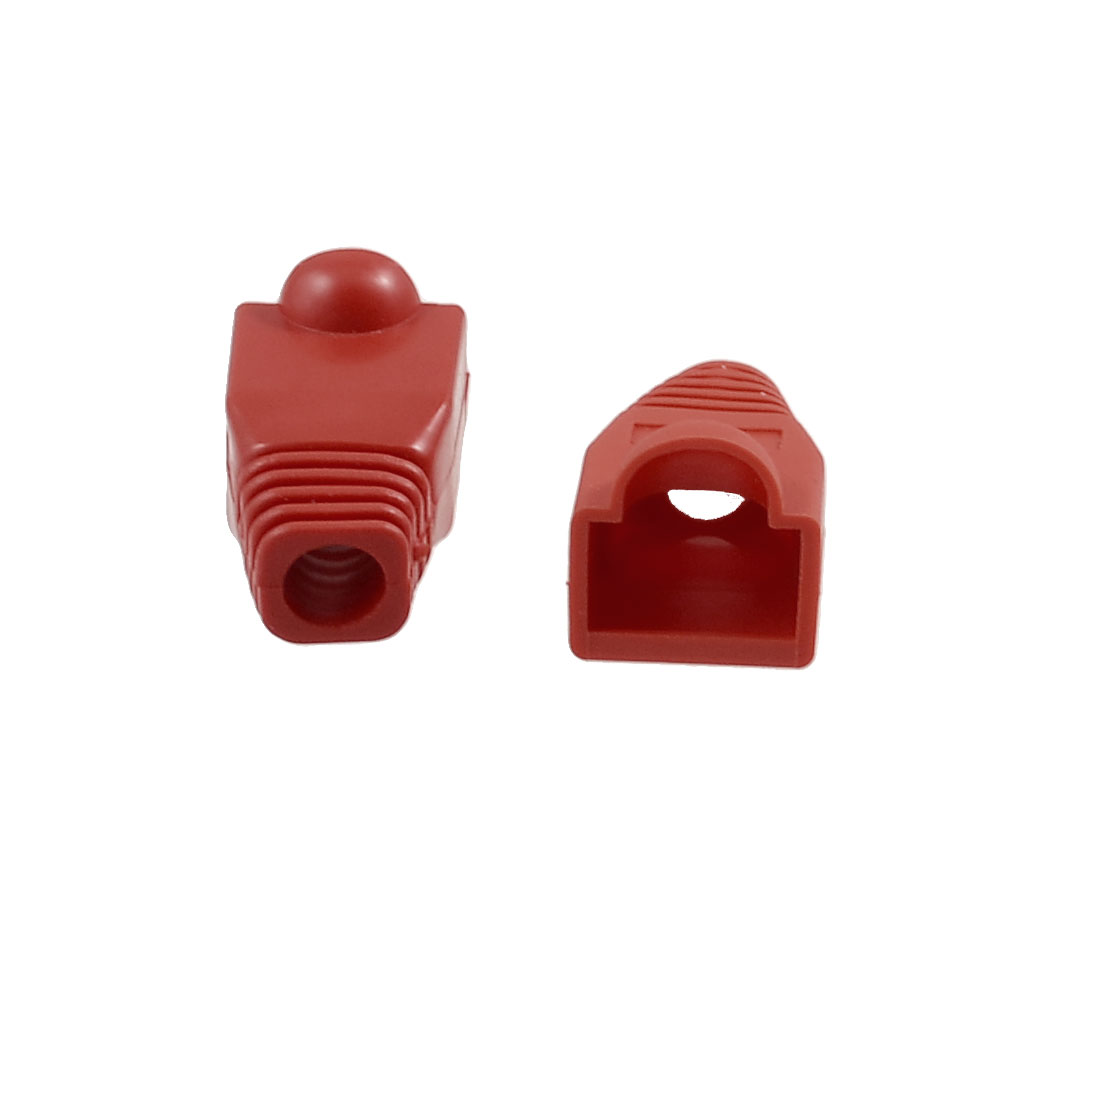 4 Pcs Red Plastic Network Cable Boot Cap Cover for RJ-45 Connectors